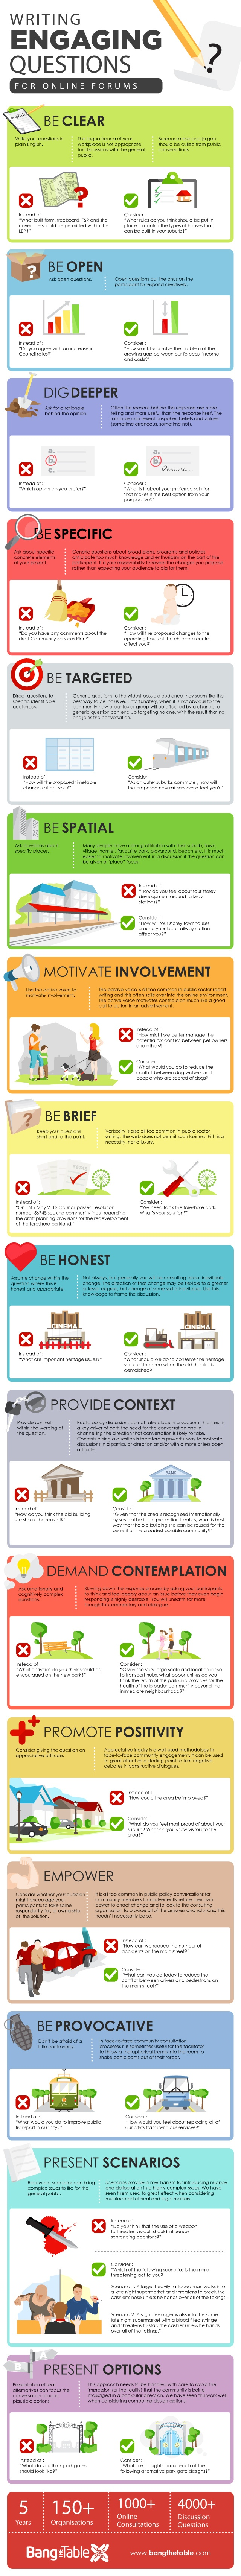 How To Write Engaging Questions for Online Forums Infographic